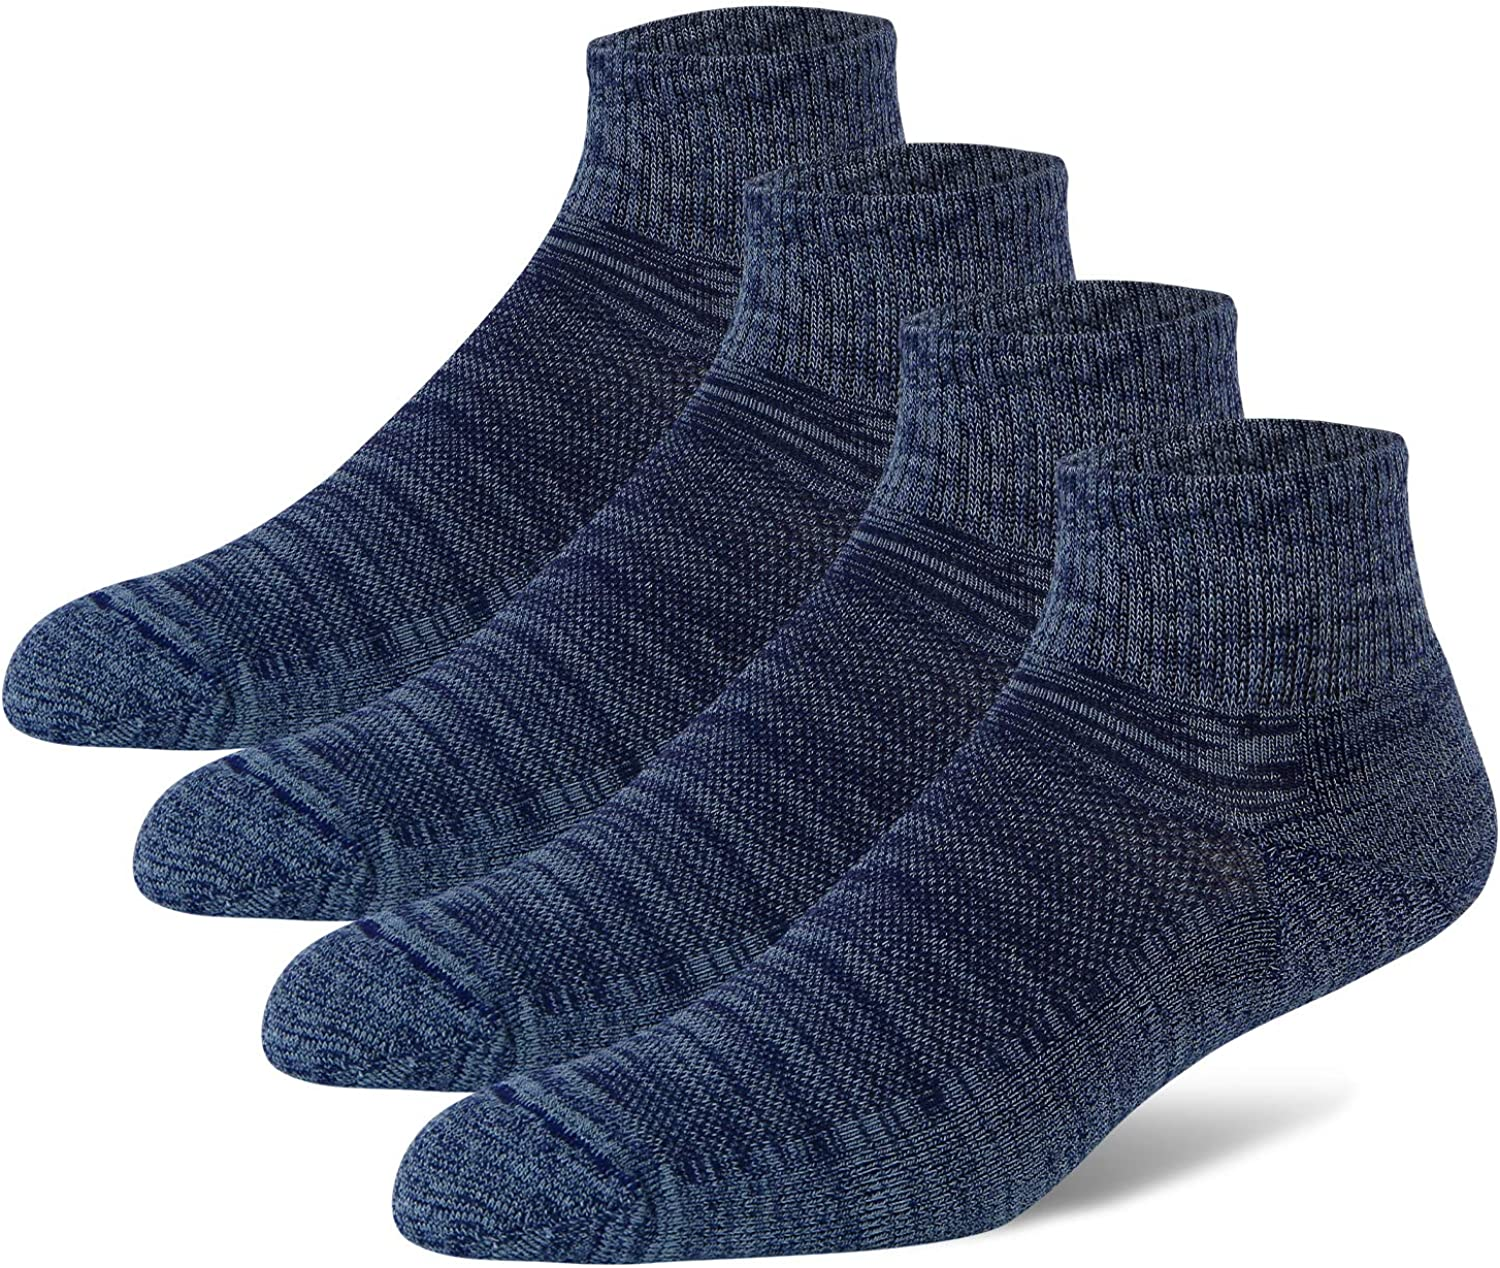 +MD Mens Bamboo Athletic Ankle Socks Extra Cushioned Running Quarter Socks with Seamless Toe 4/6 Pack